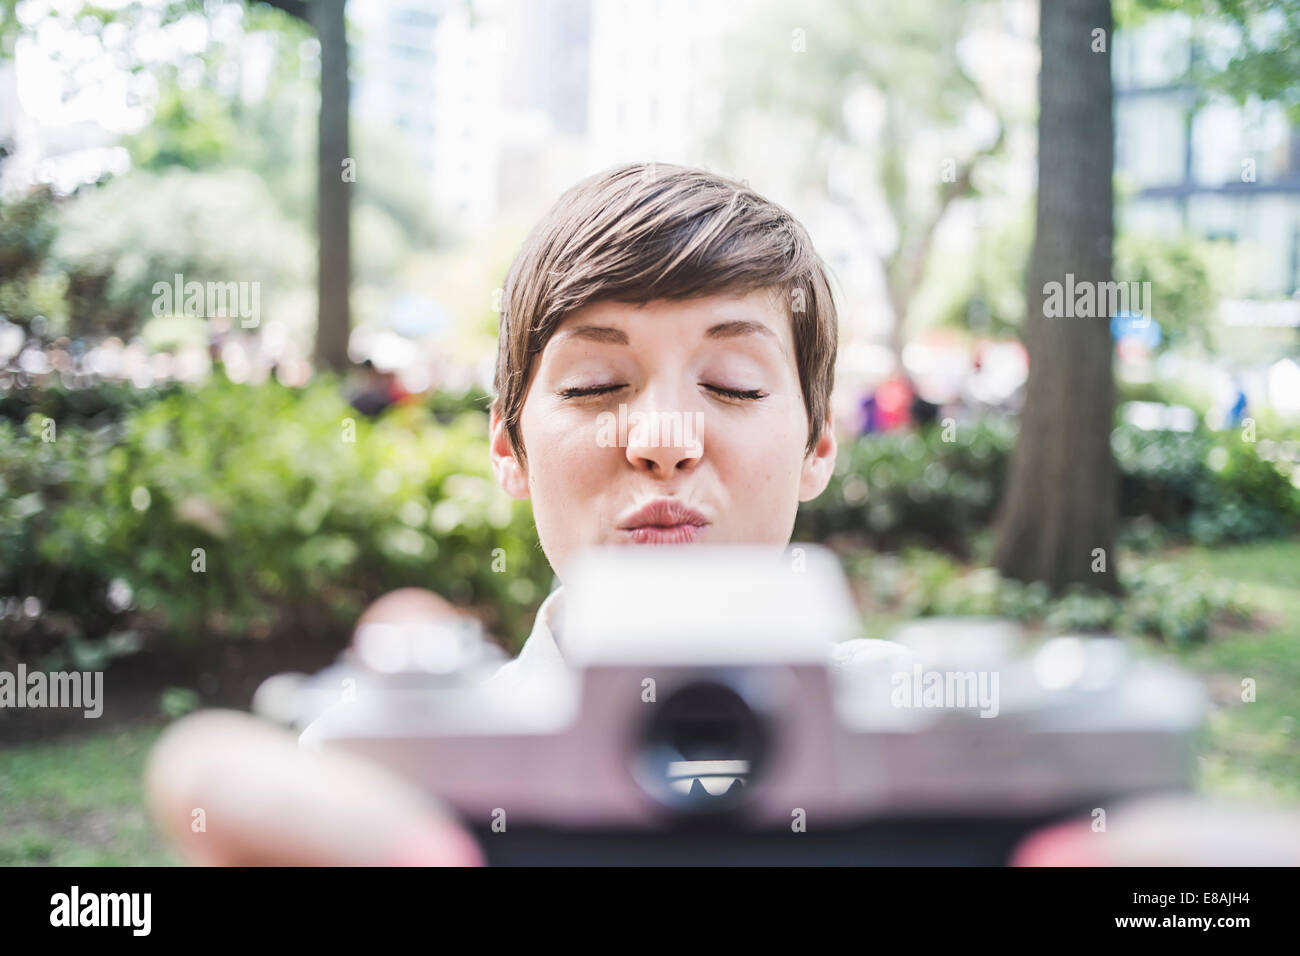 Photographer pouting for selfie - Stock Image